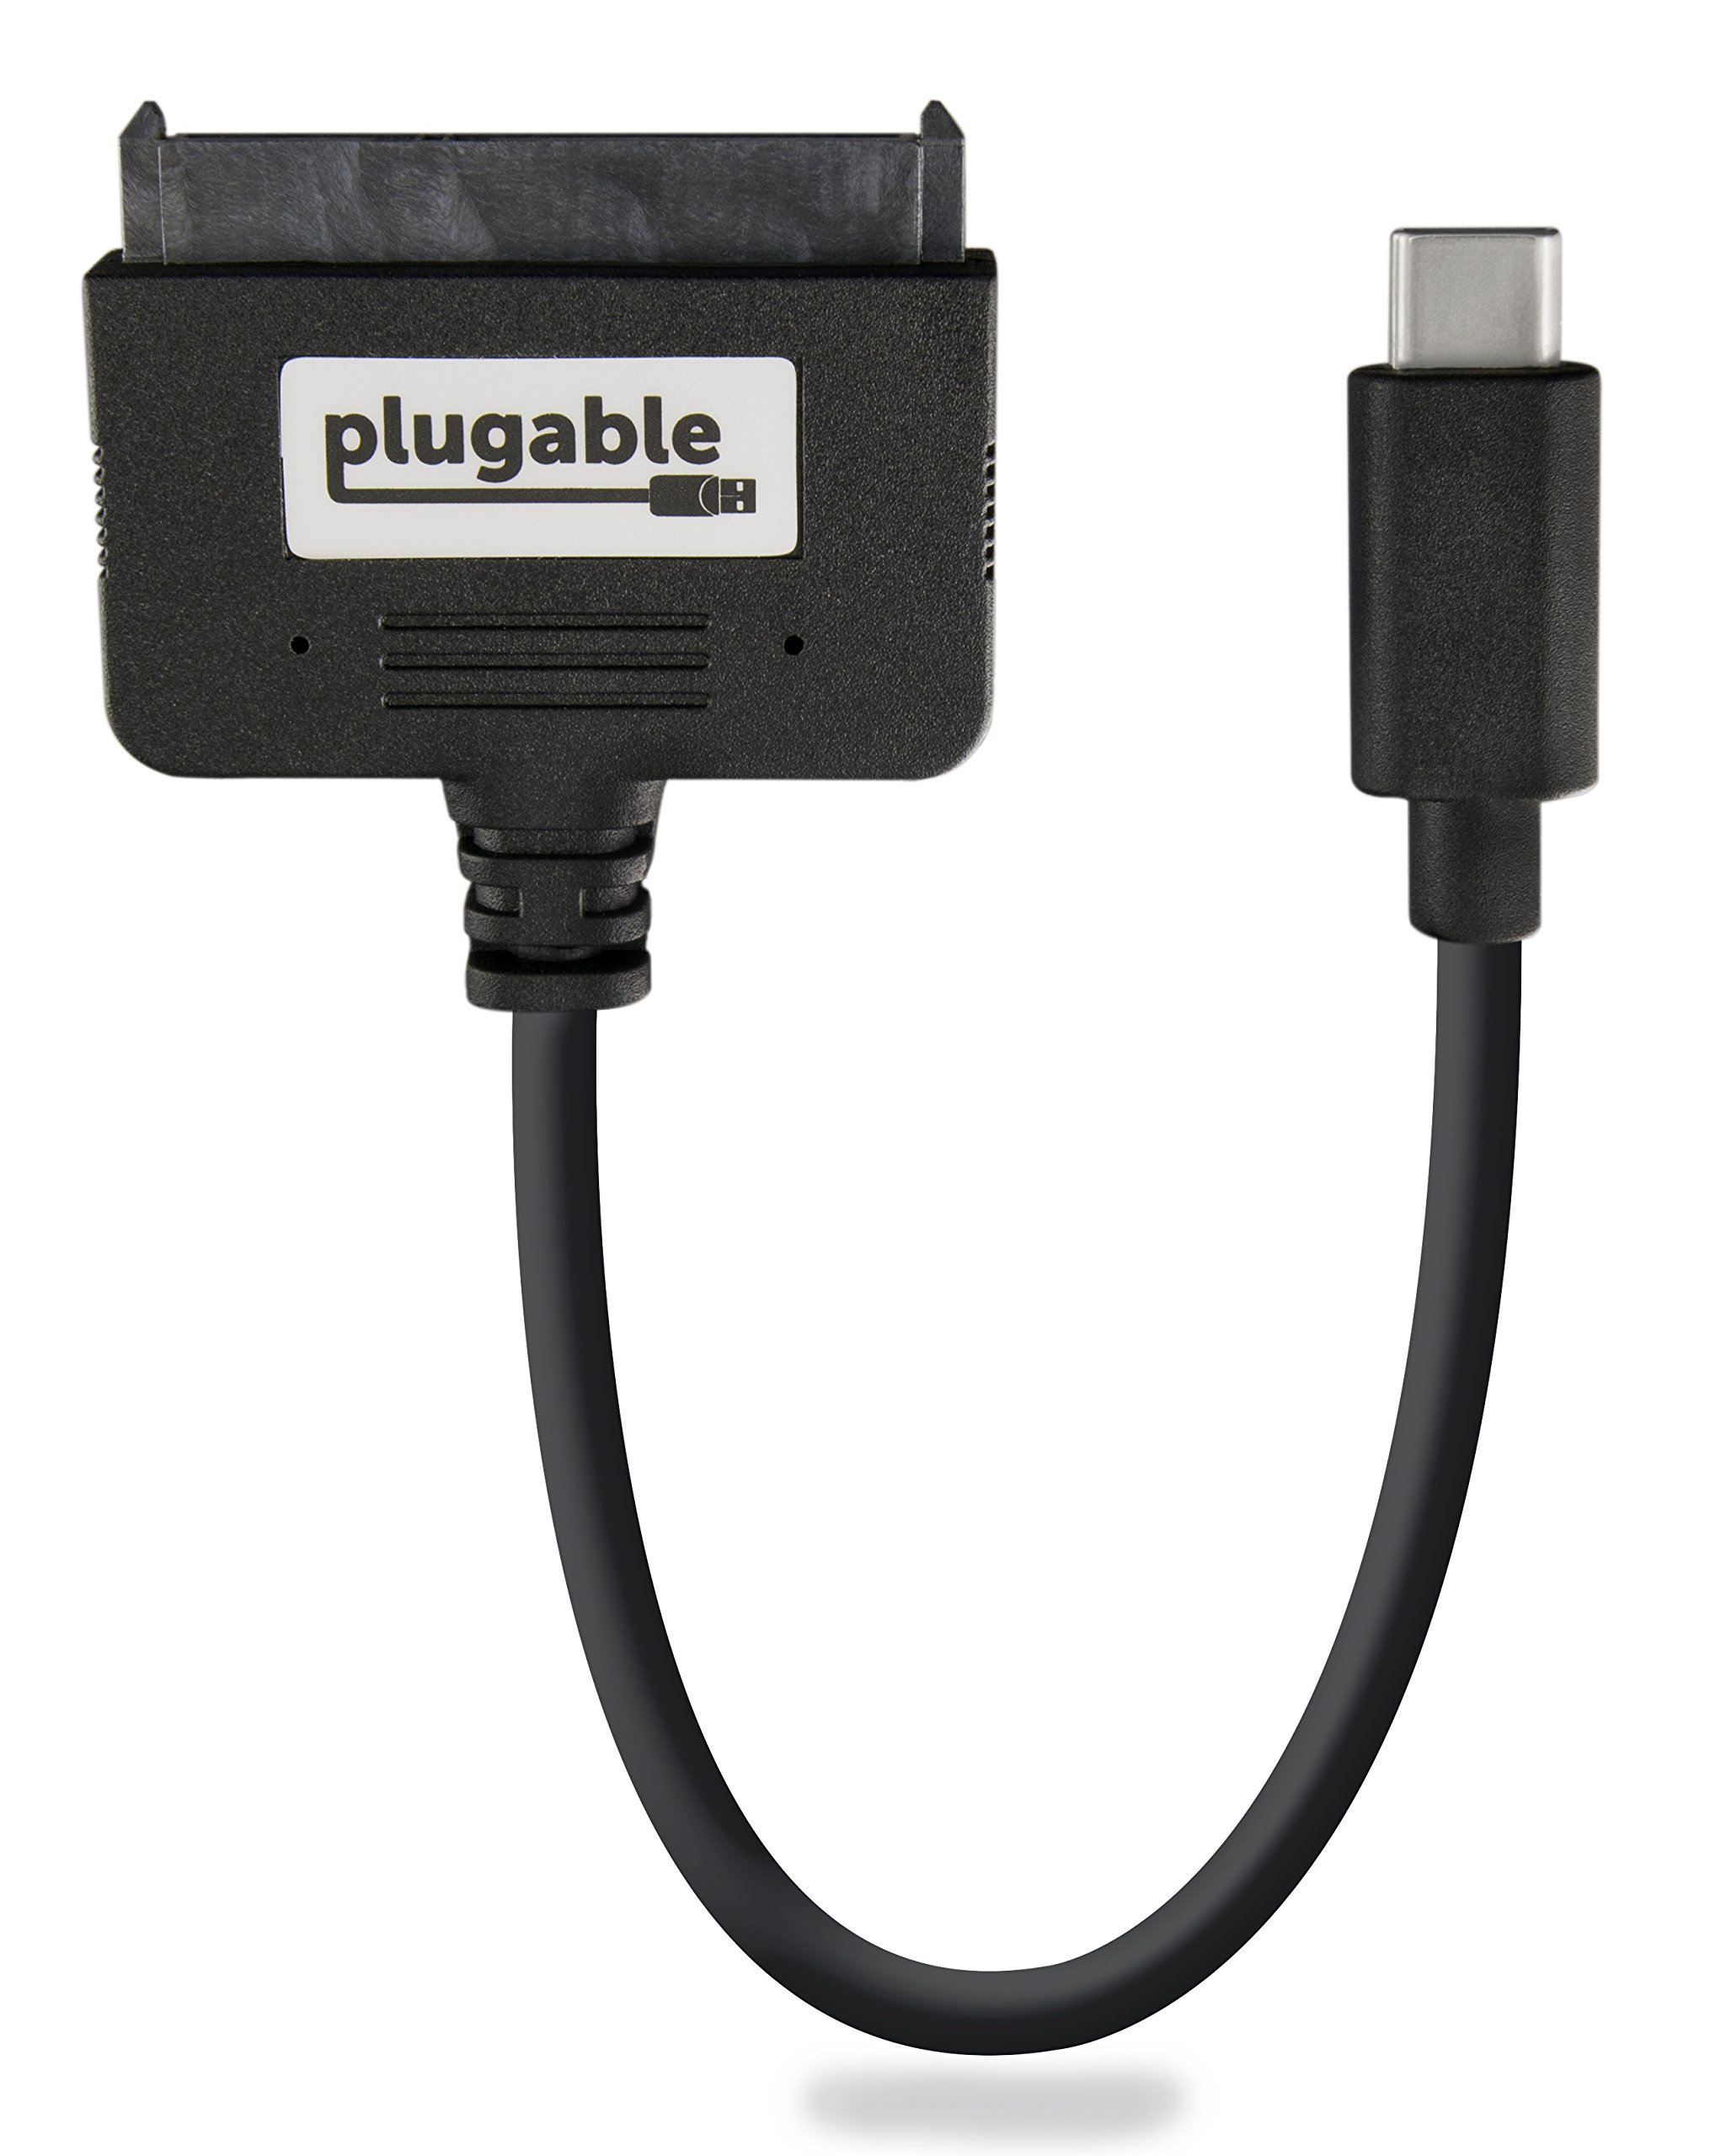 Plugable USB 3.1 Gen 2 USB-C to SATA Adapter Cable. by Plugable